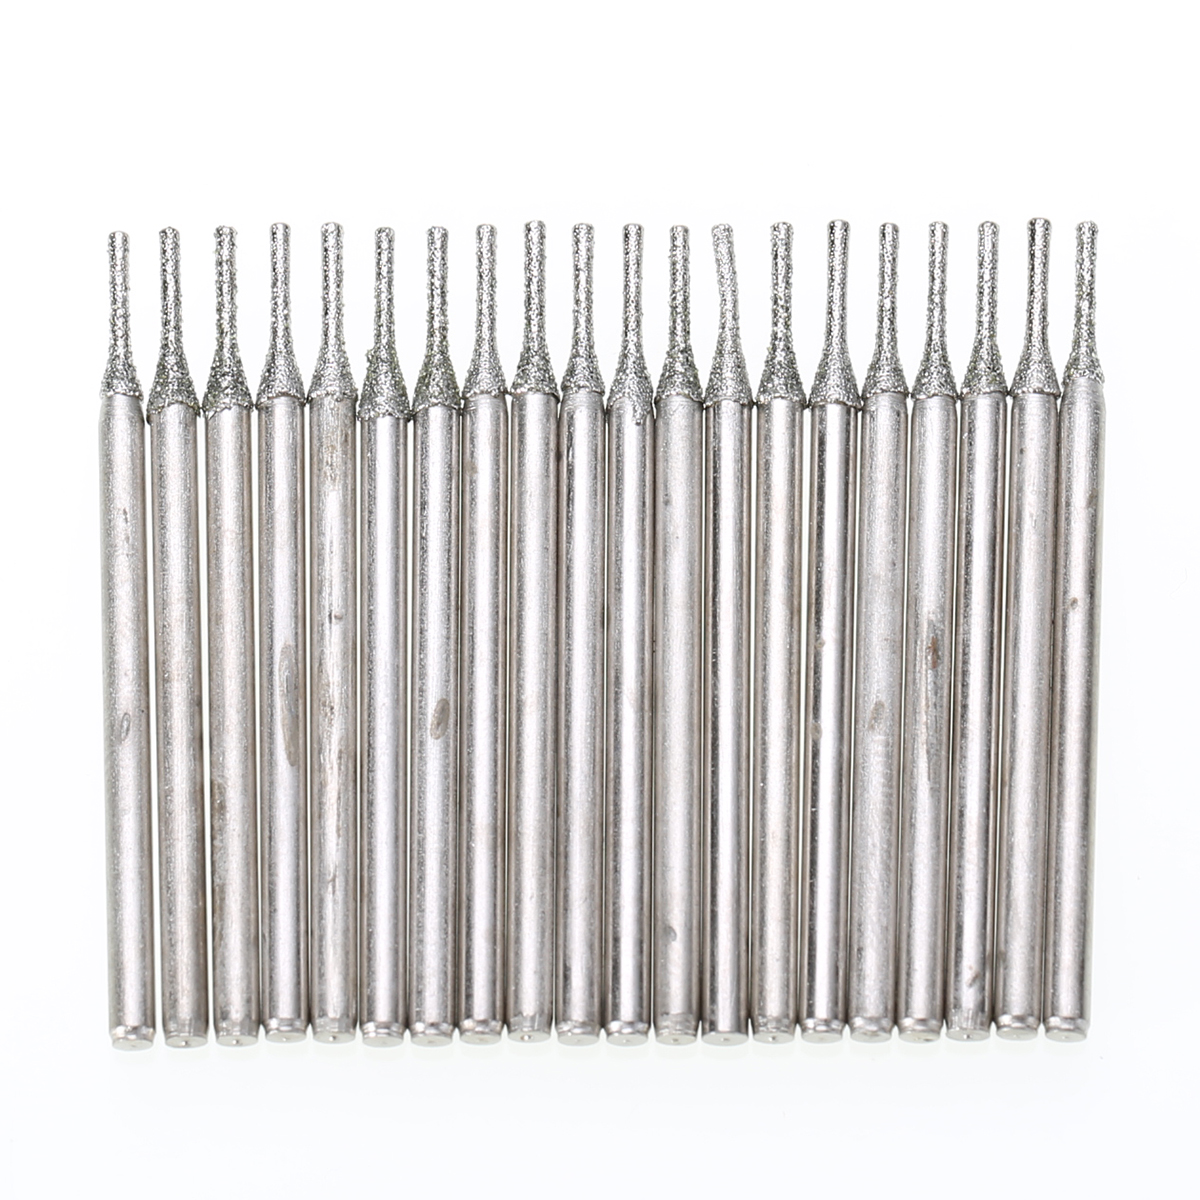 20pcs/set Diamond Coated Core Drill Bits Hole Cutter 1mm Solid Bits Needle For Gems Glass Tile silver jewelry gems drill bits diamond coated hole saw tools 0 7mm set of 100